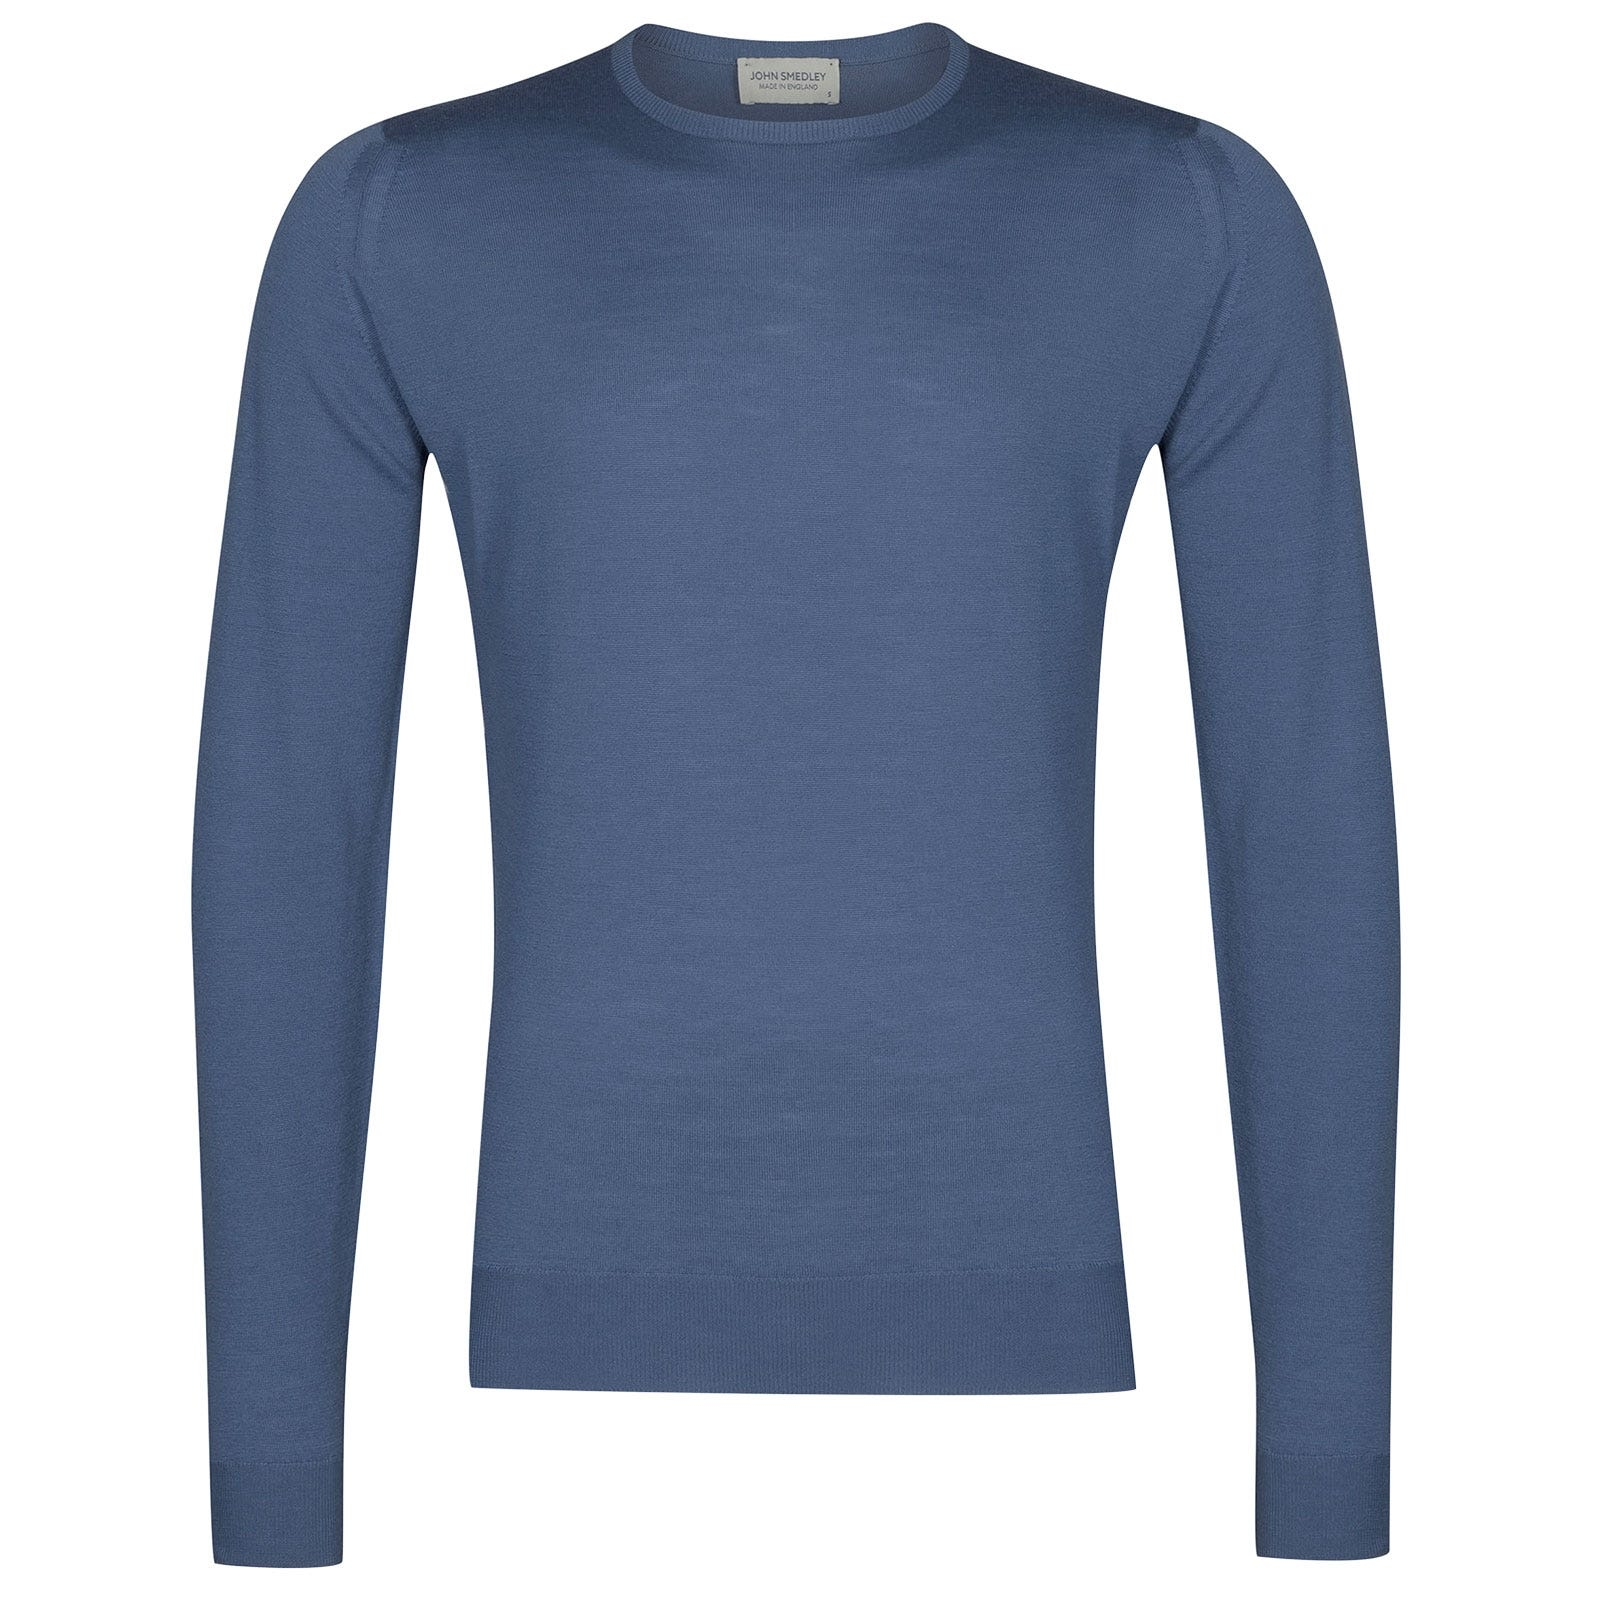 John Smedley Lundy in Blue Iris Pullover-XLG